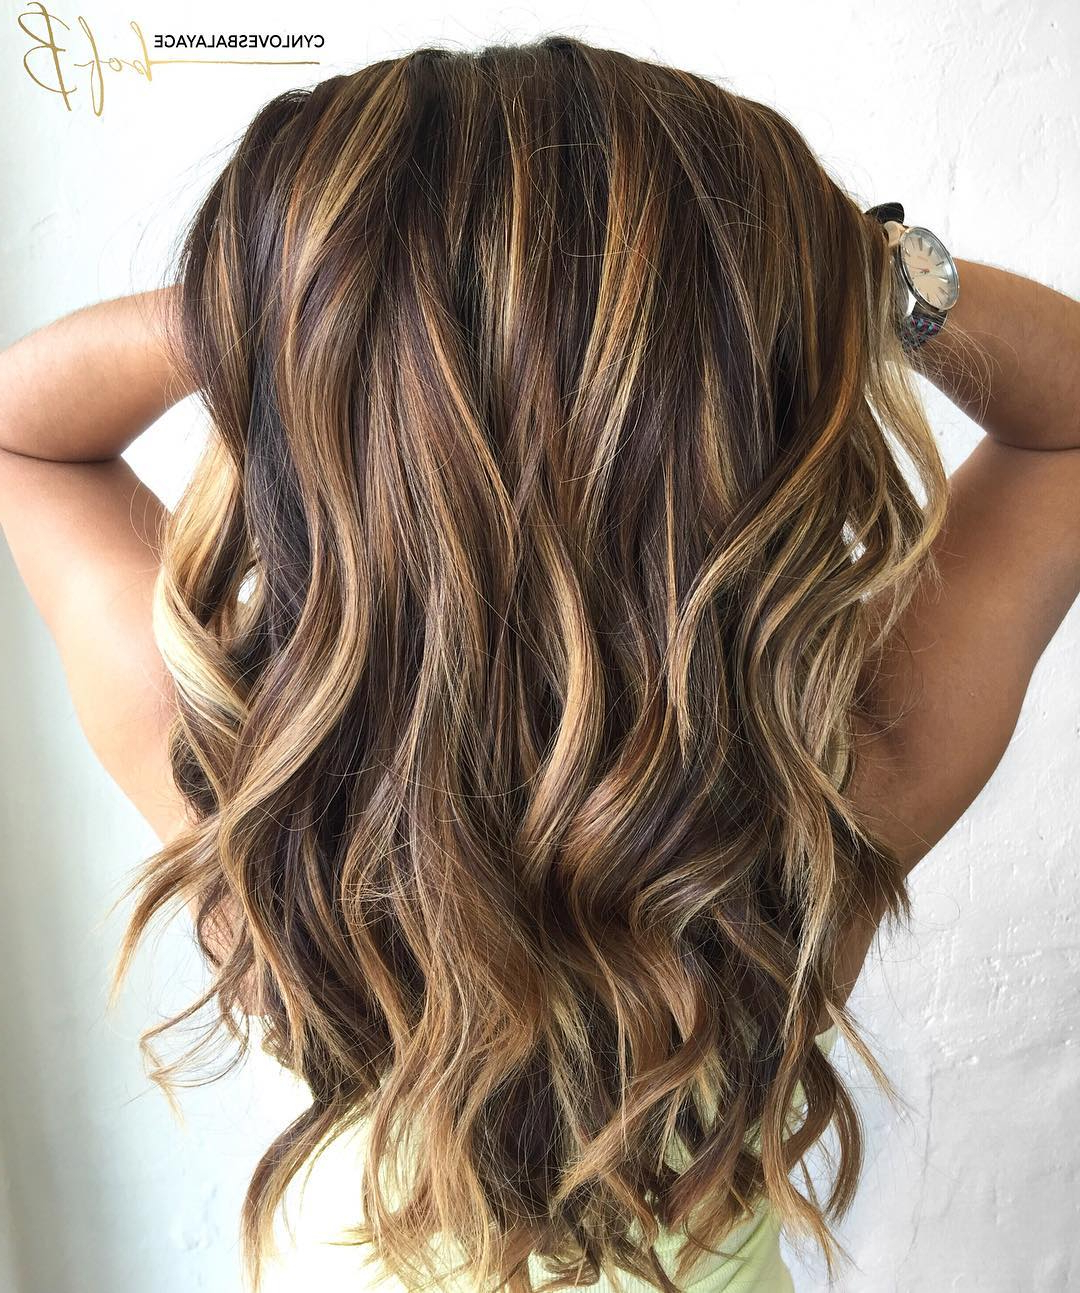 60 Looks With Caramel Highlights On Brown And Dark Brown Hair Intended For Angelic Blonde Balayage Bob Hairstyles With Curls (View 10 of 20)